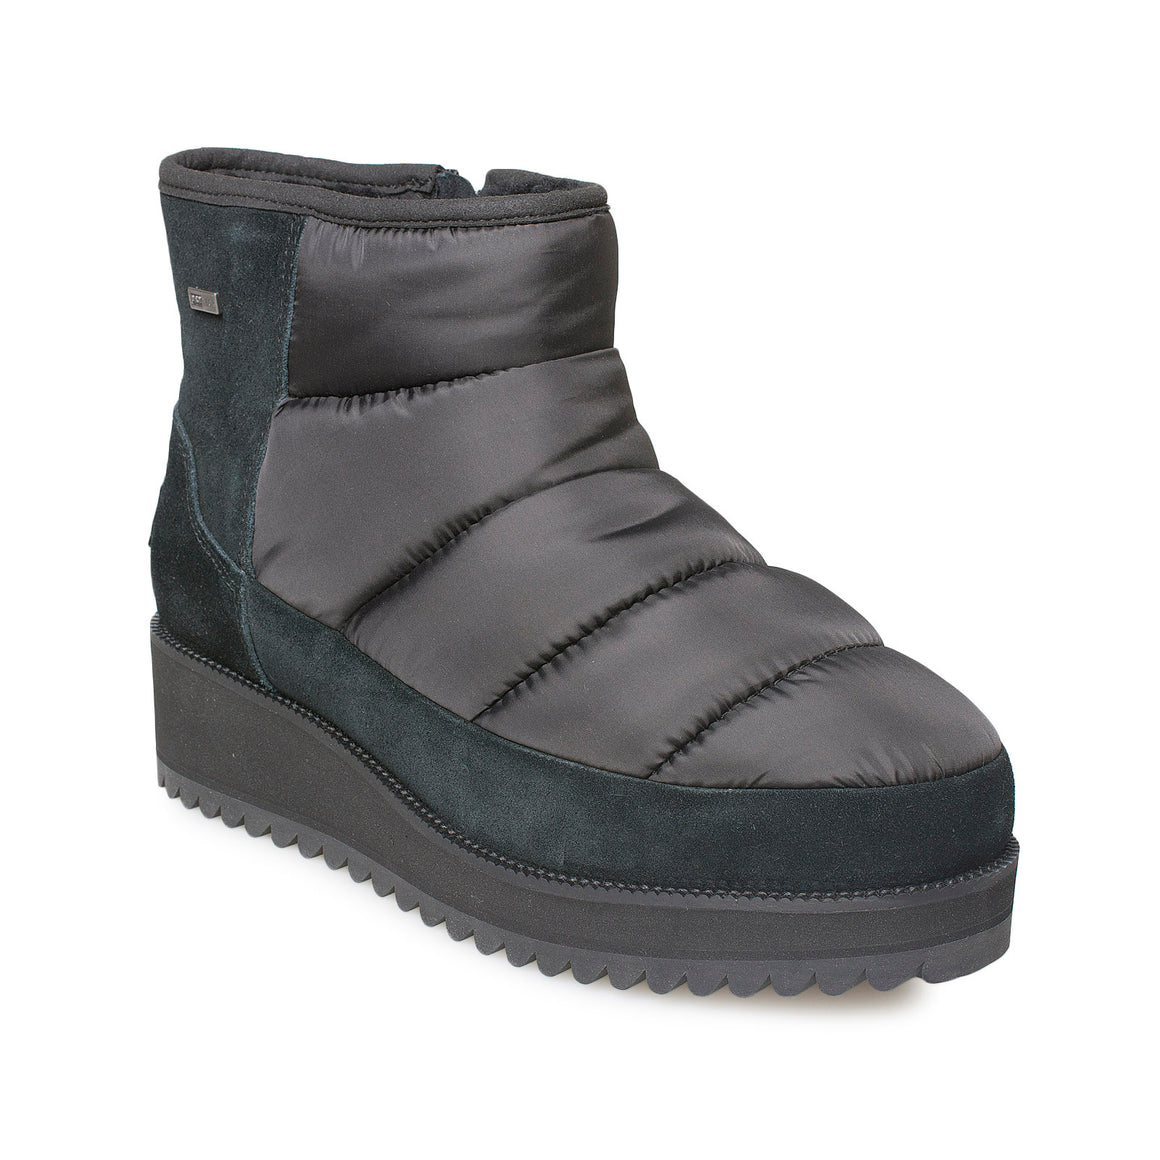 UGG Ridge Mini Black Boots - Women's